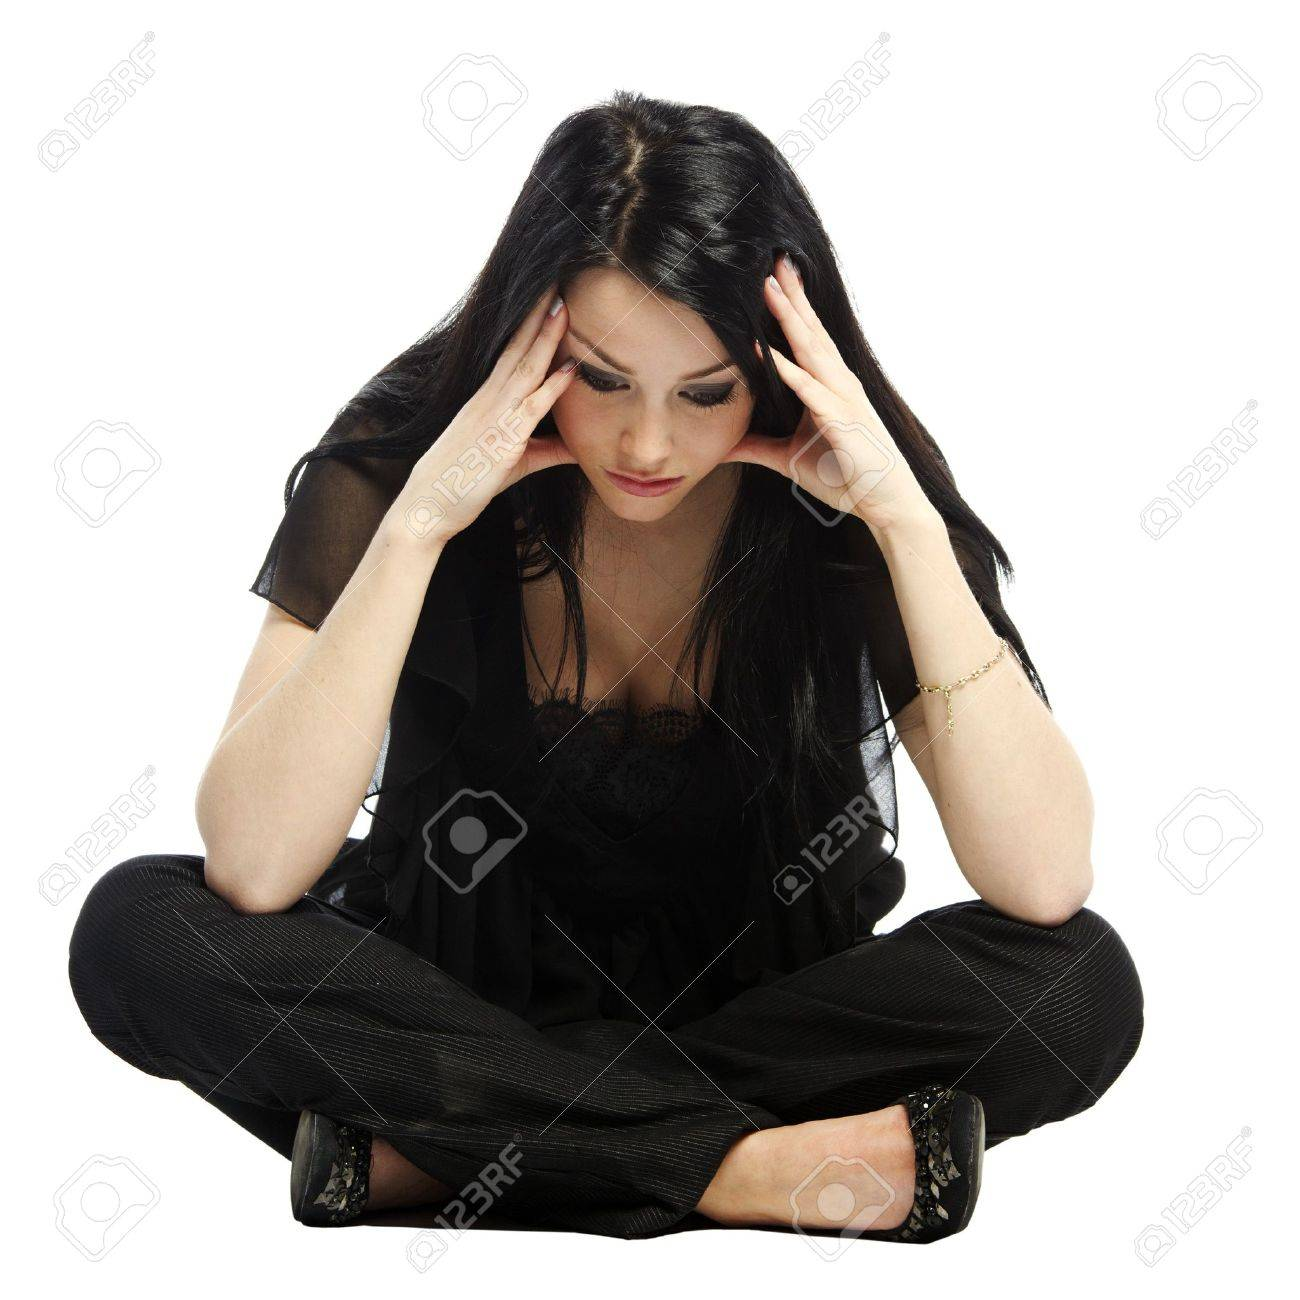 Young business casual woman worried with hands on head sitting Stock Photo - 11537486